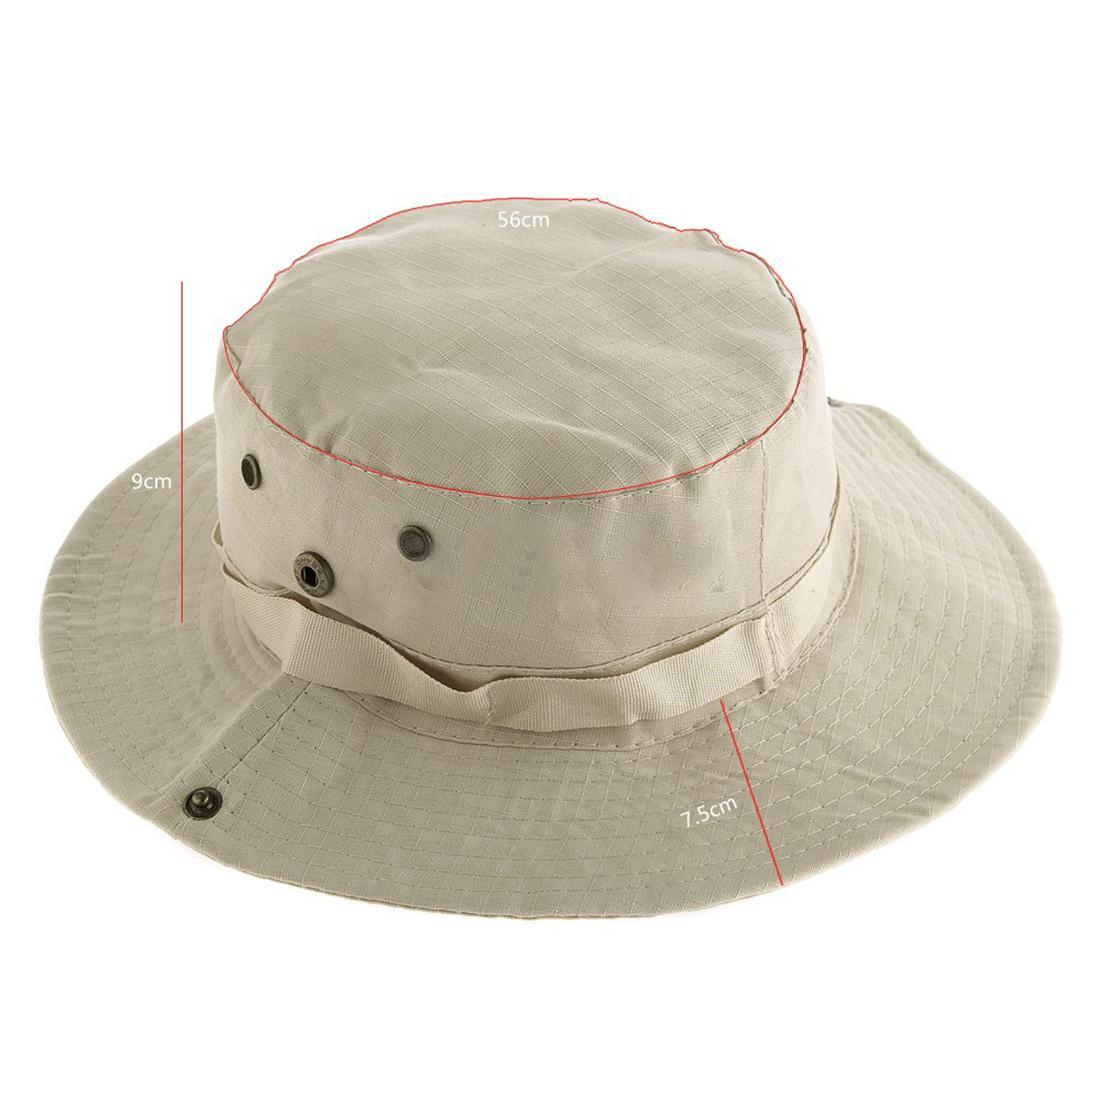 New Fishing Camping Sunshade Hats Wide Brim Bucket Hat Traveling Hiking  Bonnie Hat With Adjustable Straps Mens Sports Caps UK 2019 From Bunner 11a58f92d2c3